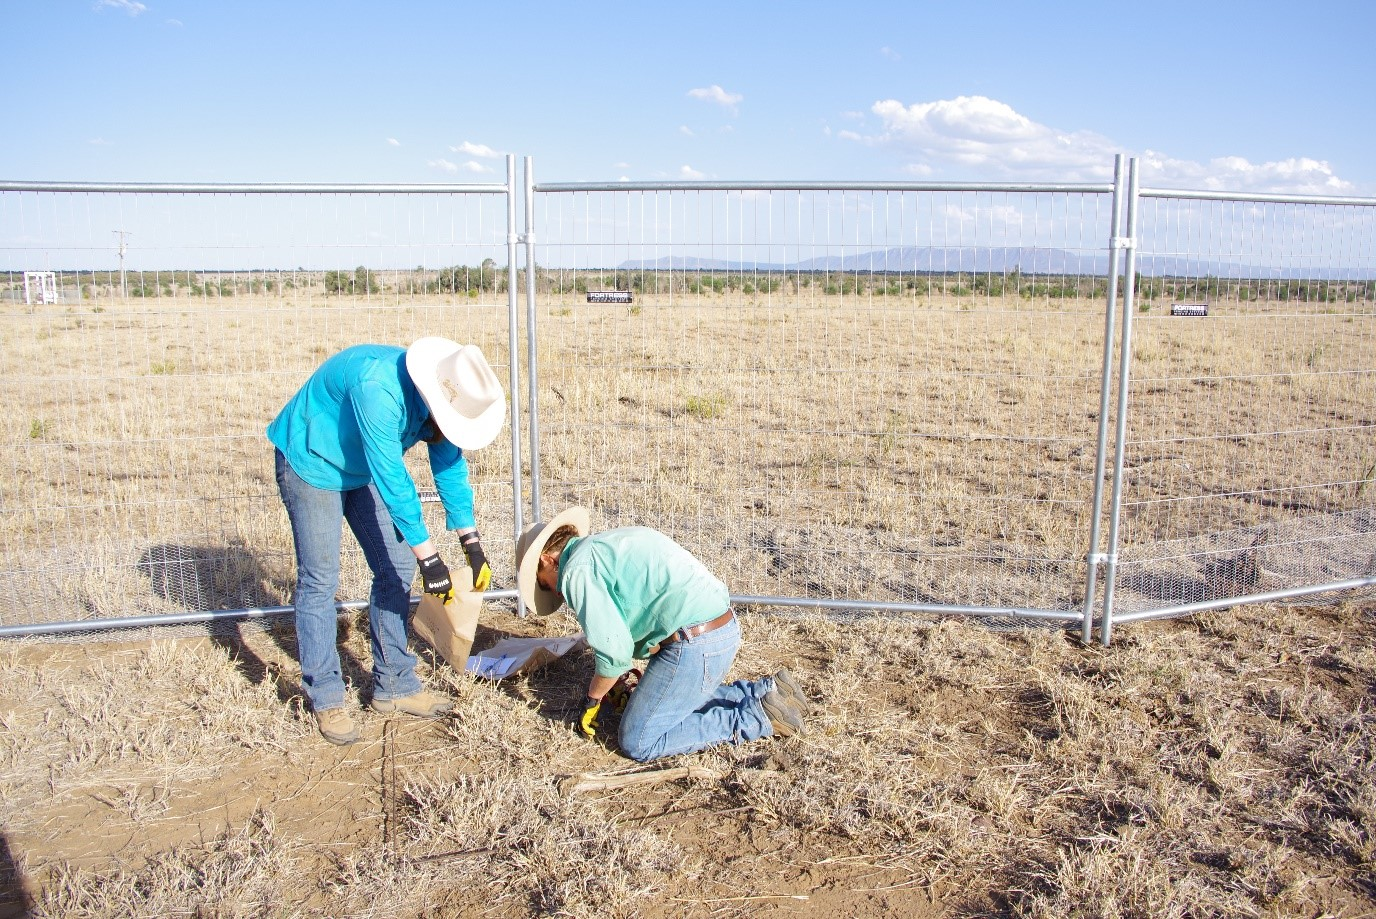 Two people in front of a six foot fence (SWIFTSYND site grazing exclusion fence) digging a hole and collecting the soil.